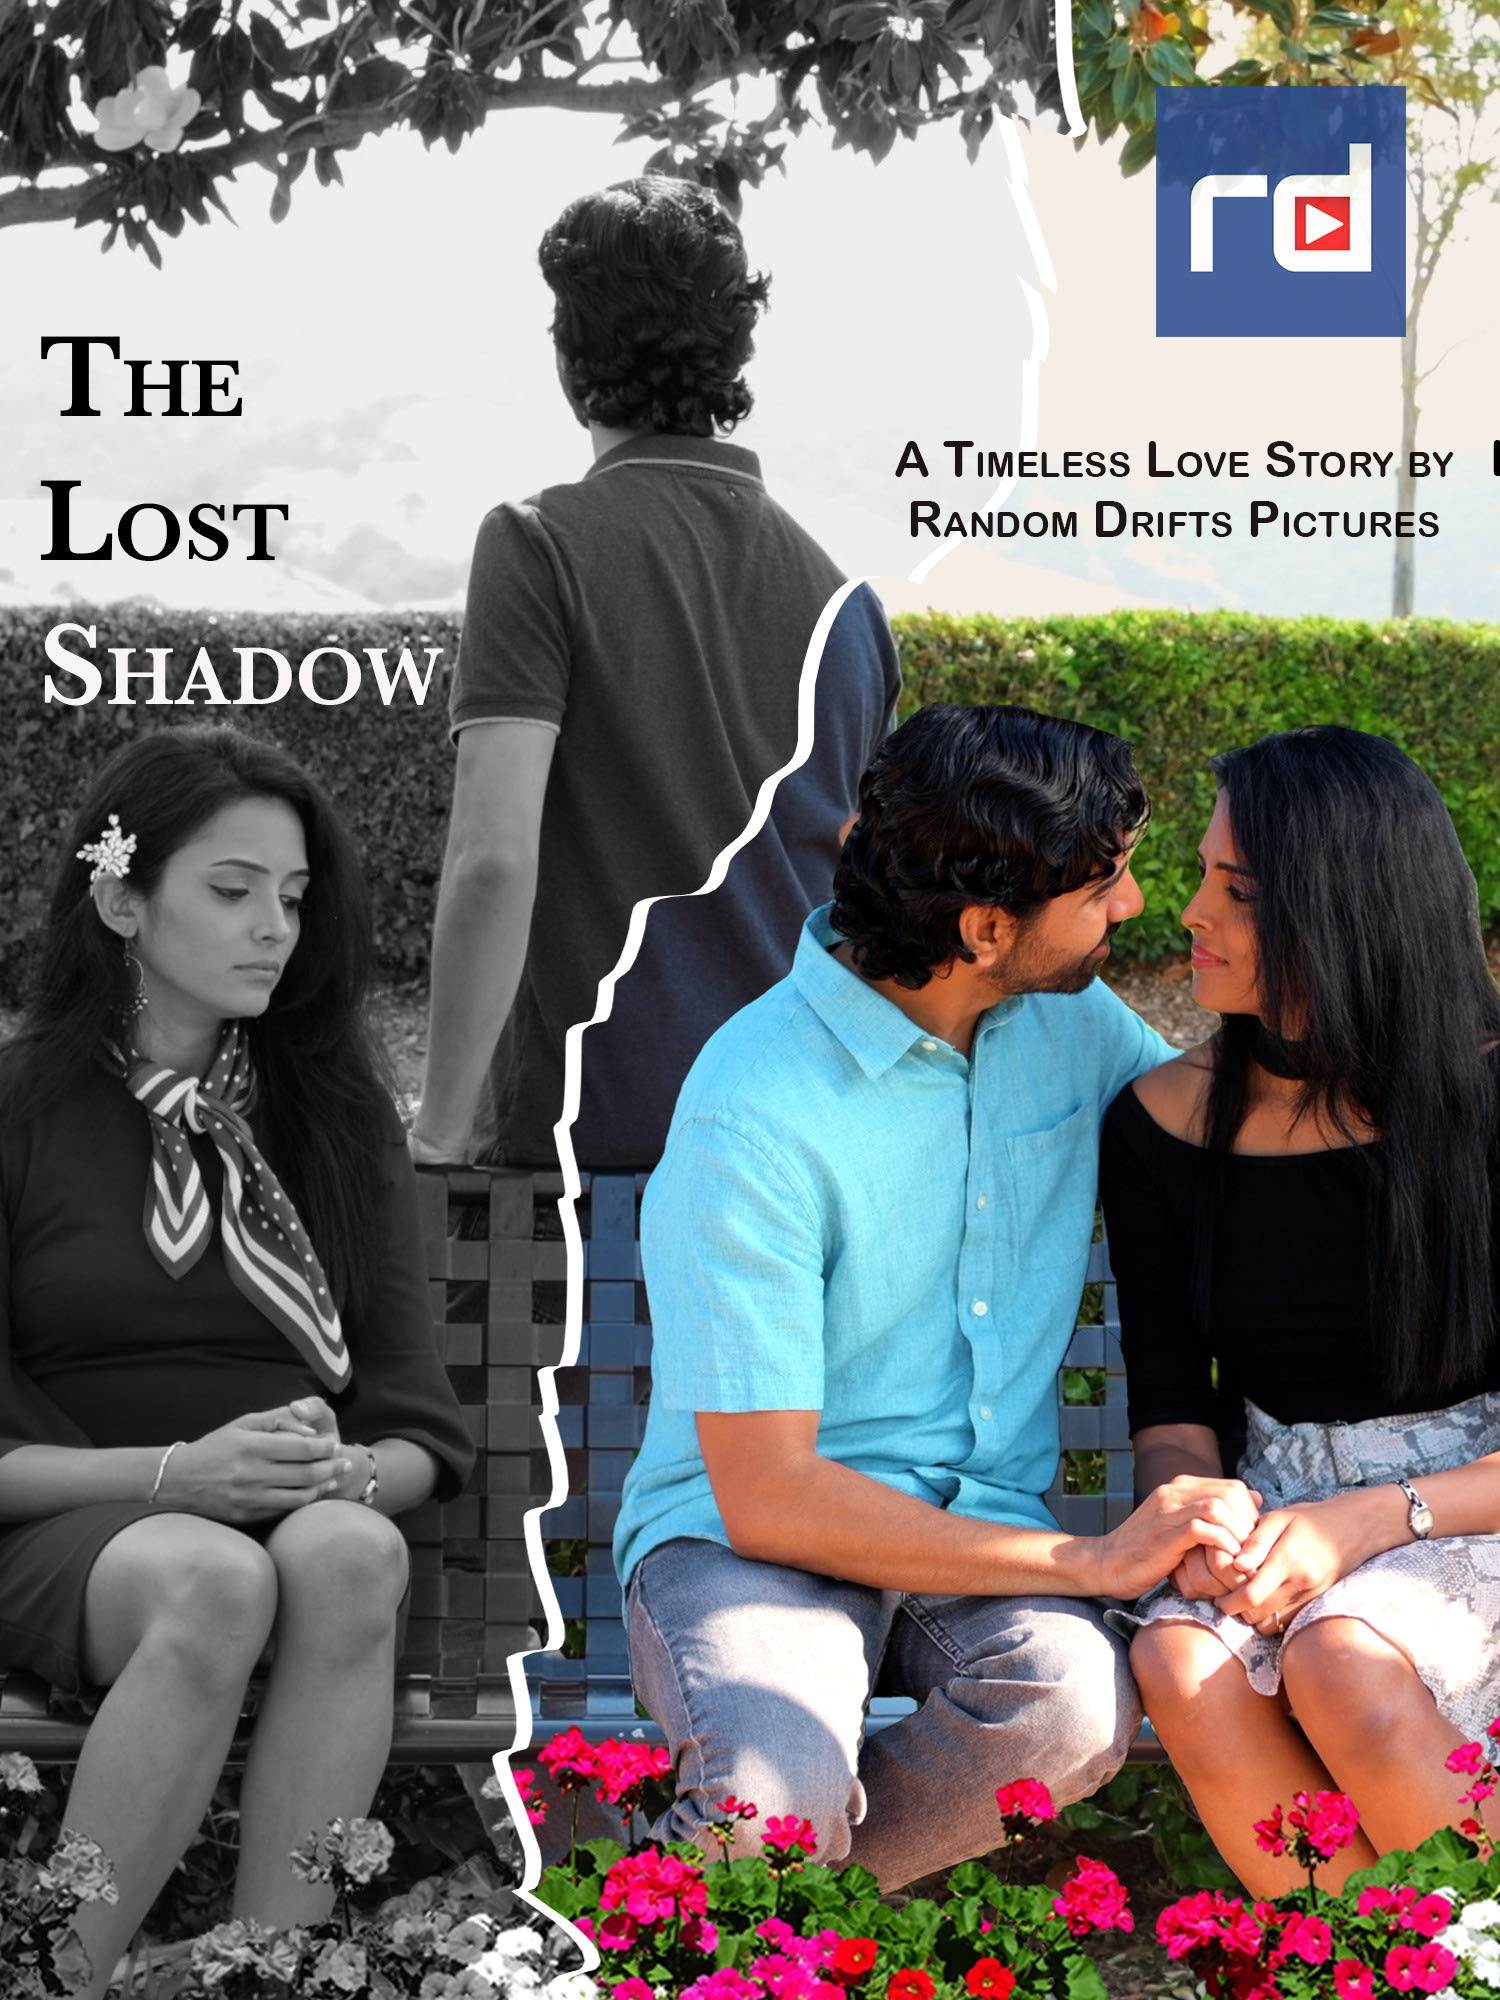 The Lost Shadow